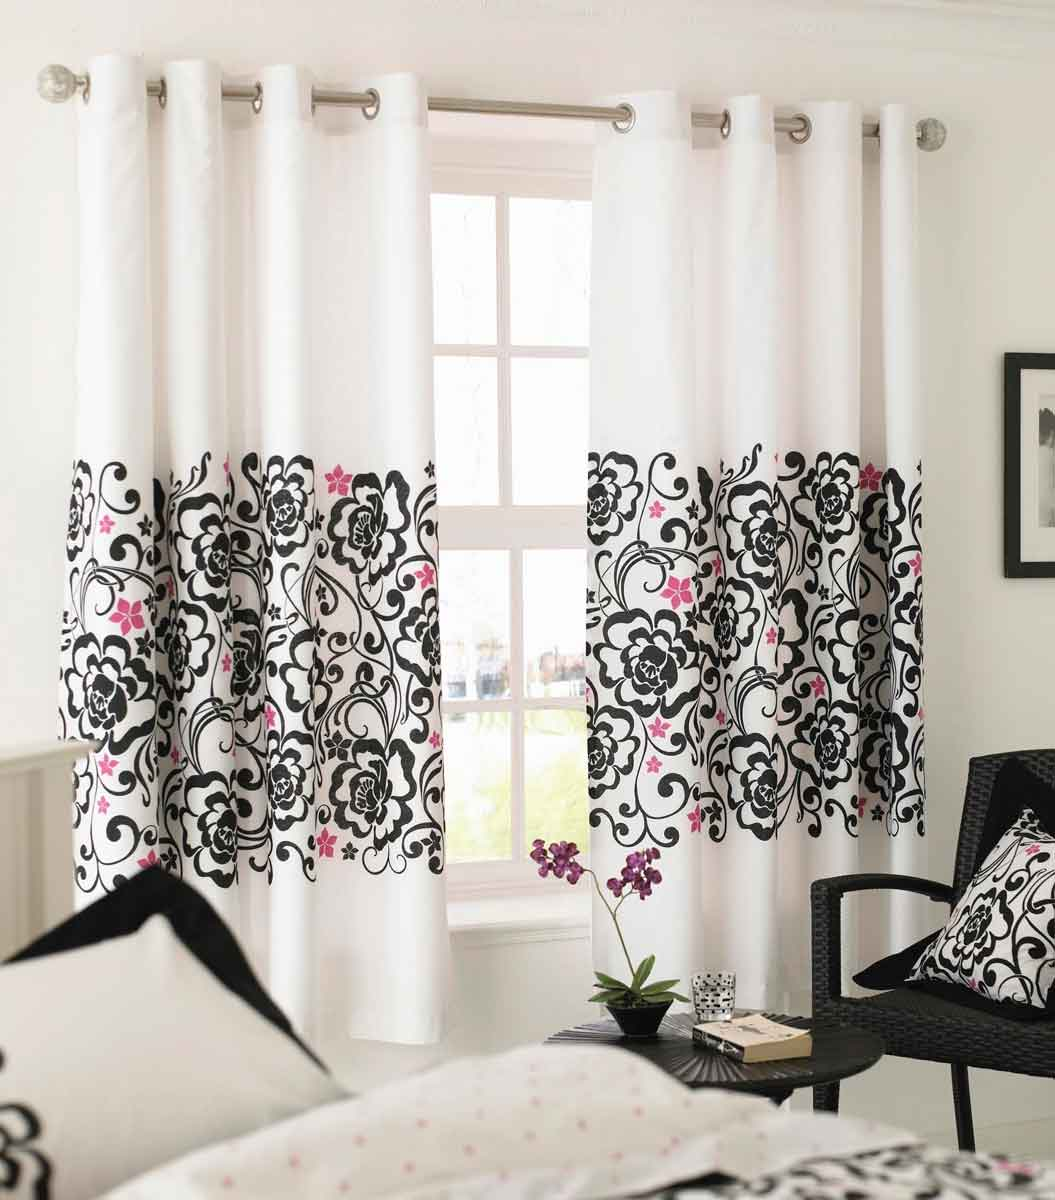 Amazing Black and White Bedroom Curtains Ideas 1055 x 1200 · 82 kB · jpeg